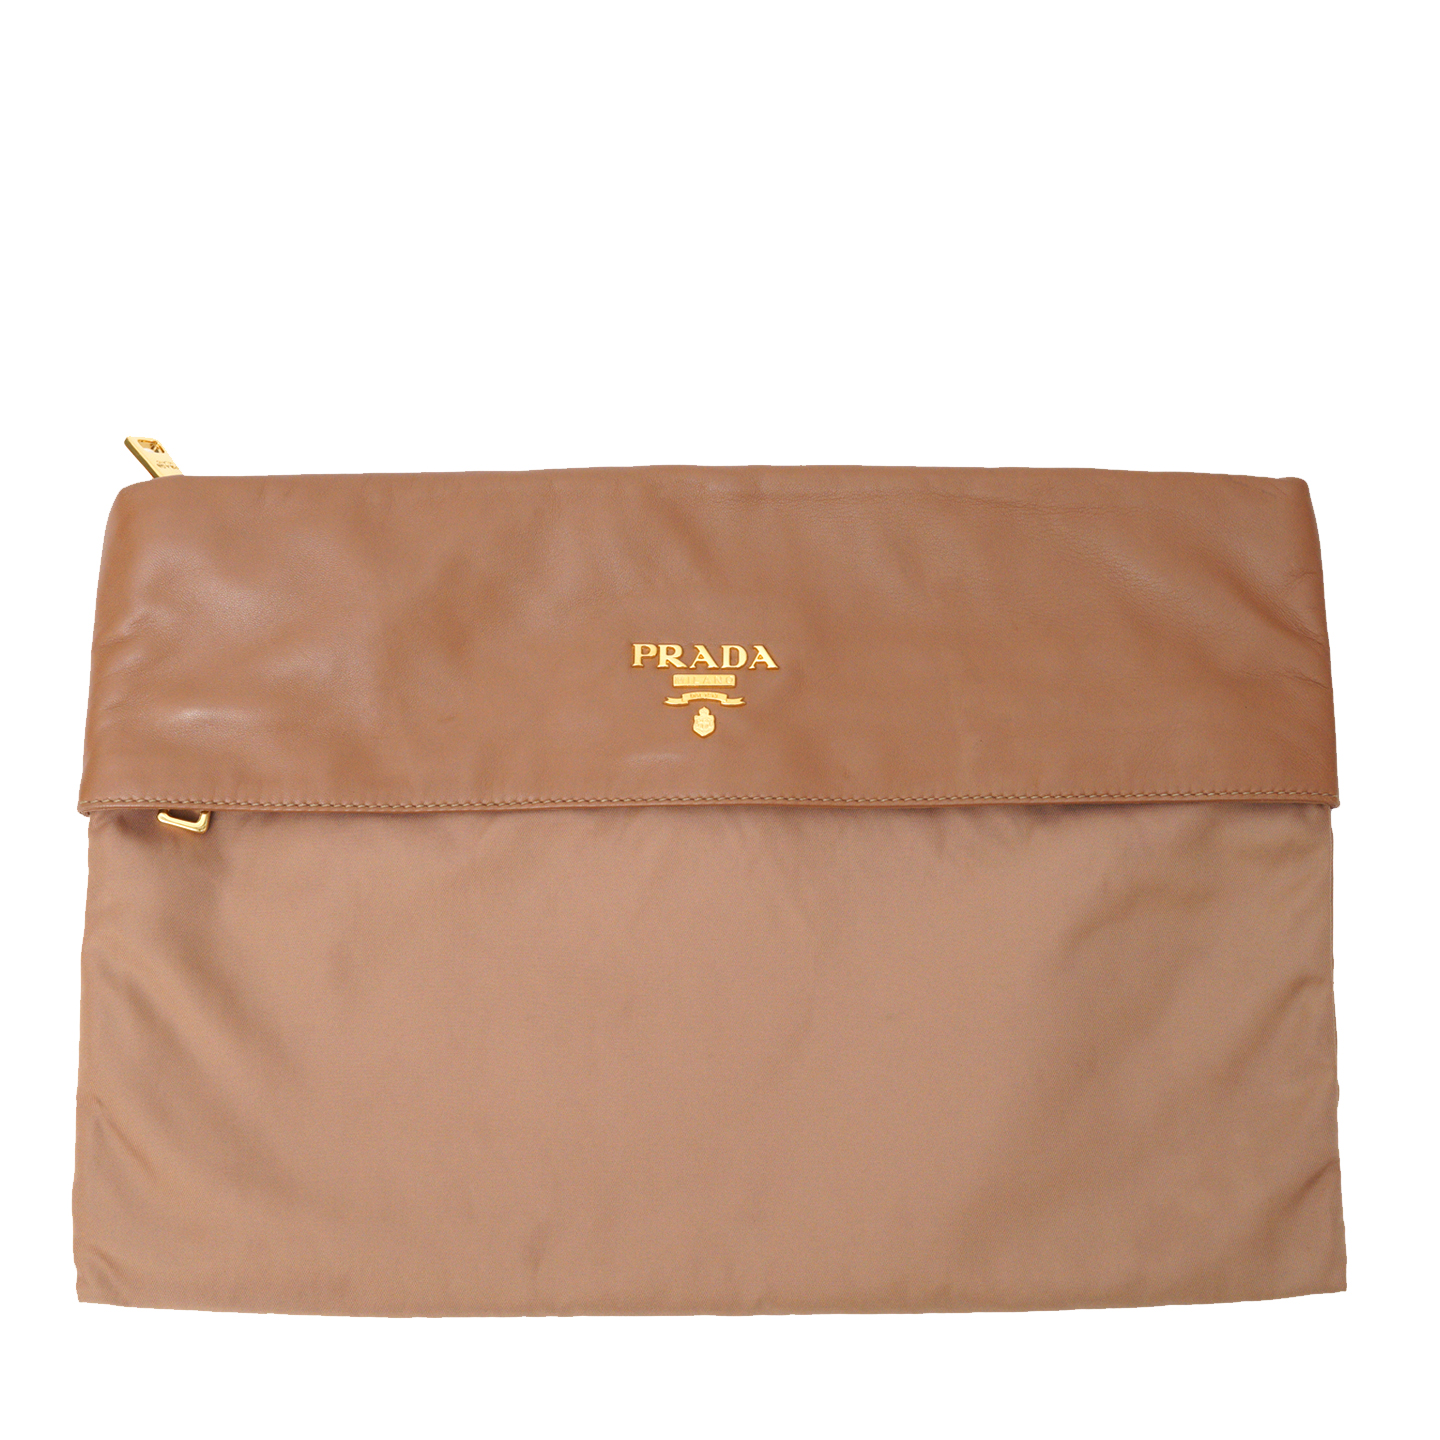 Prada Satin Raso Evening Clutch 01